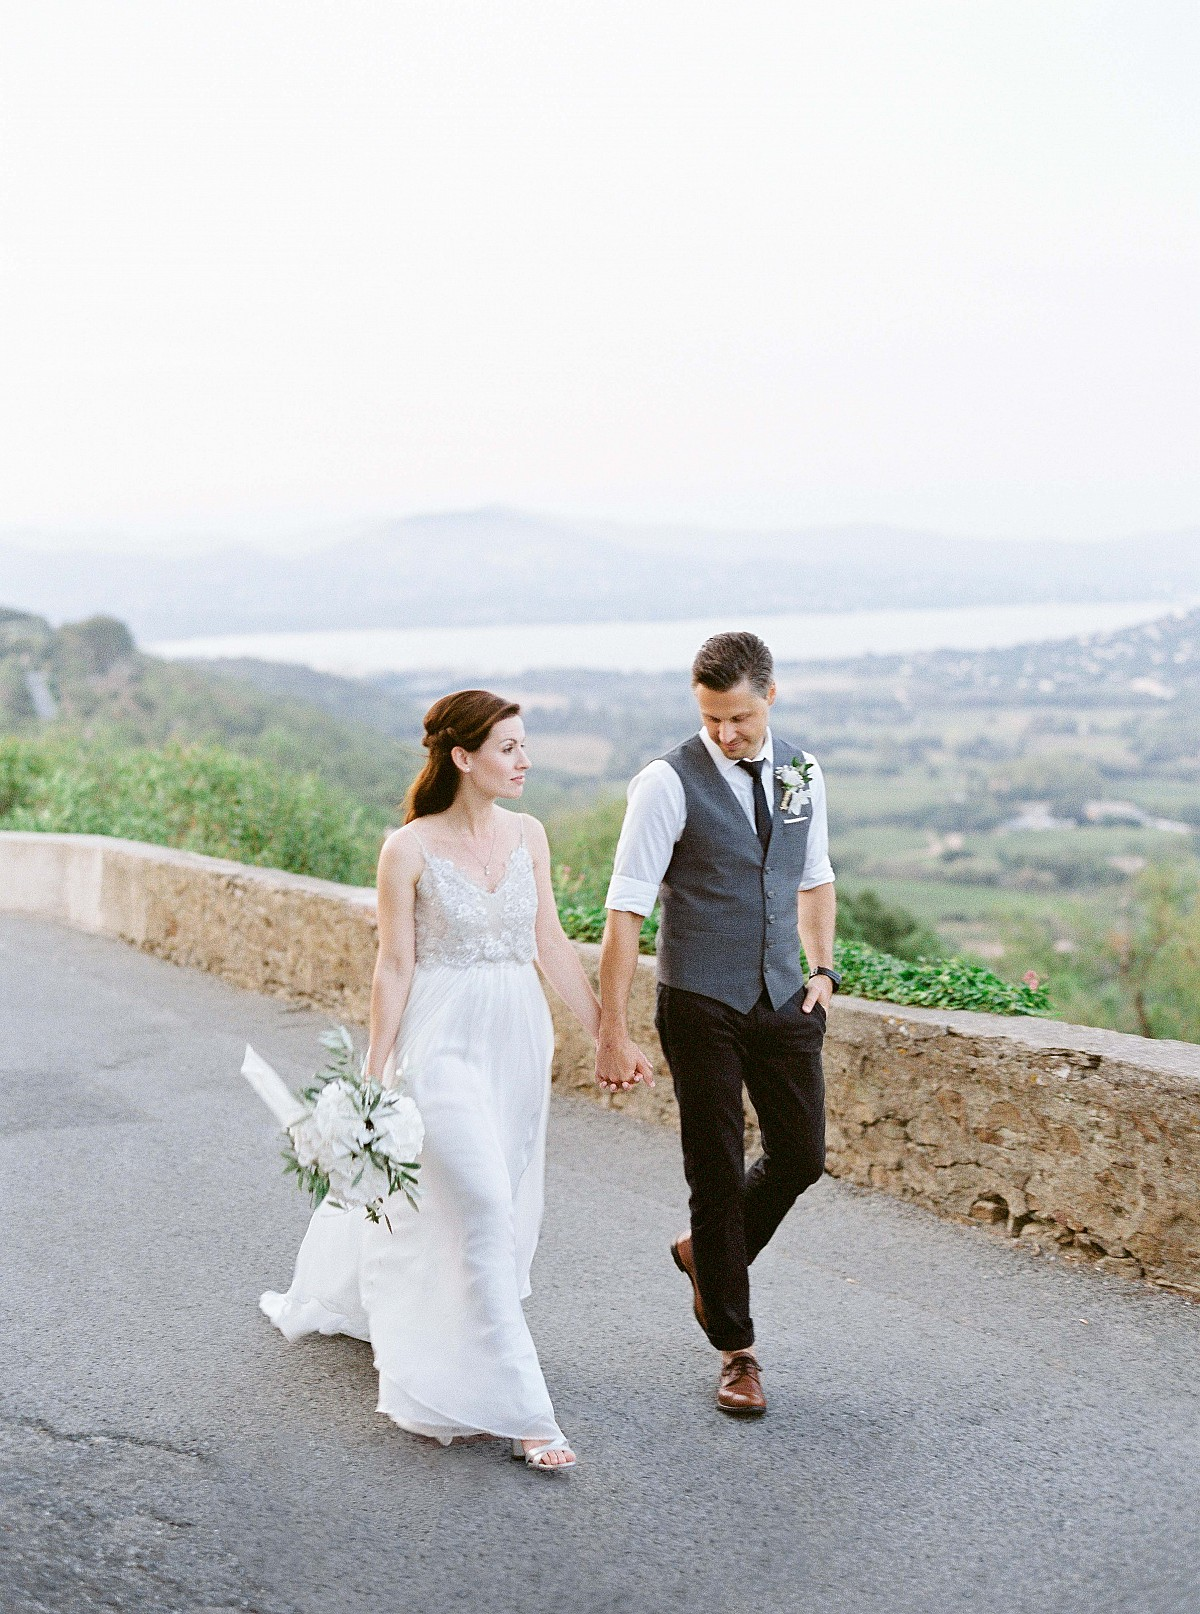 Diana and Ralph's Cote d'Azur Intimate Civil Ceremony